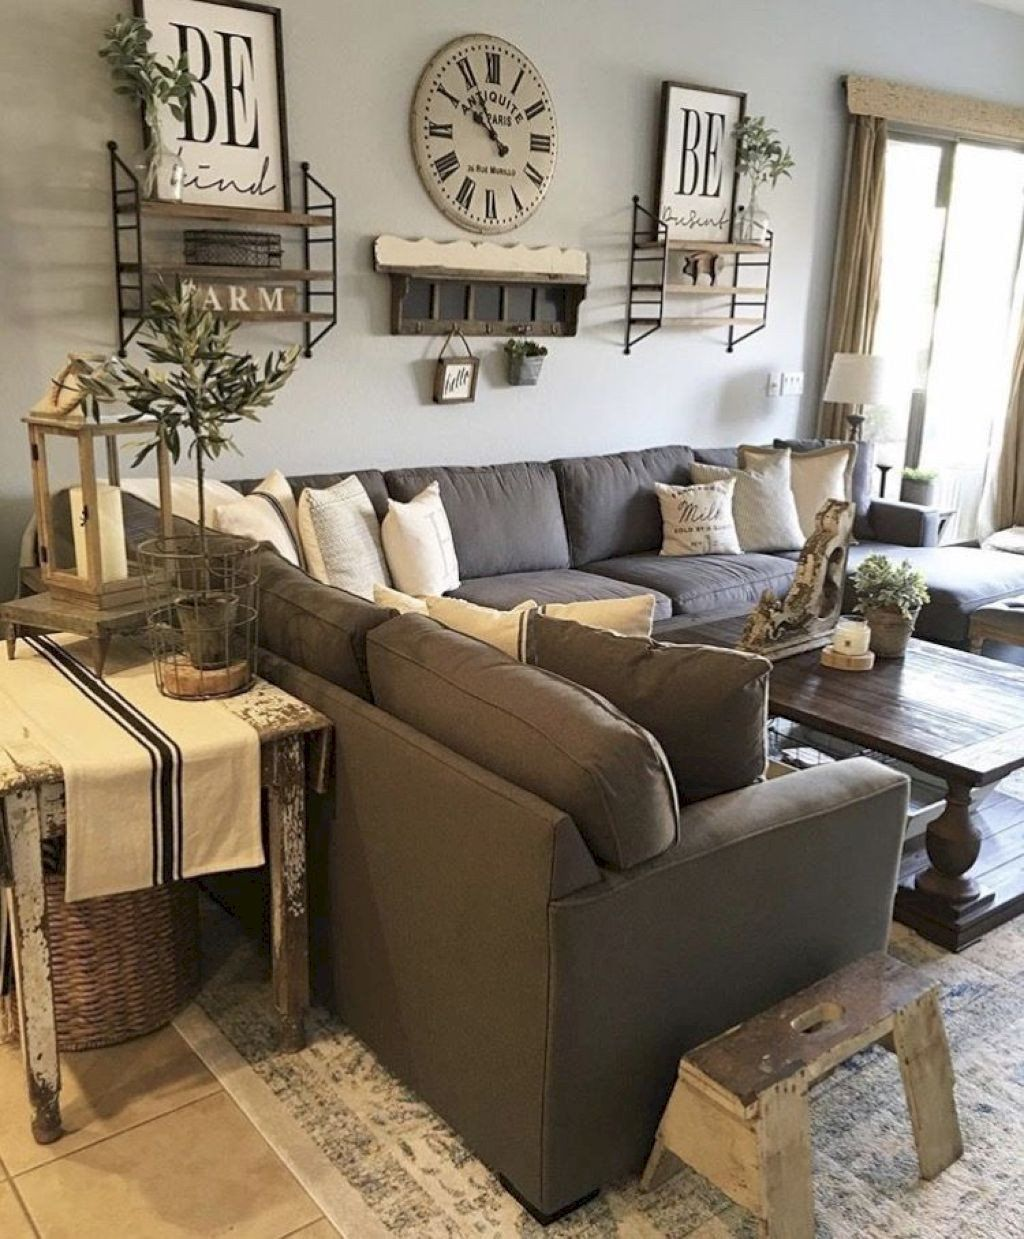 Modern Farmhouse Living Room Decorating Ideas Beautiful Pin By Morgan Cano On Home Farm House Living Room Farmhouse Decor Living Room Living Room Decor Country